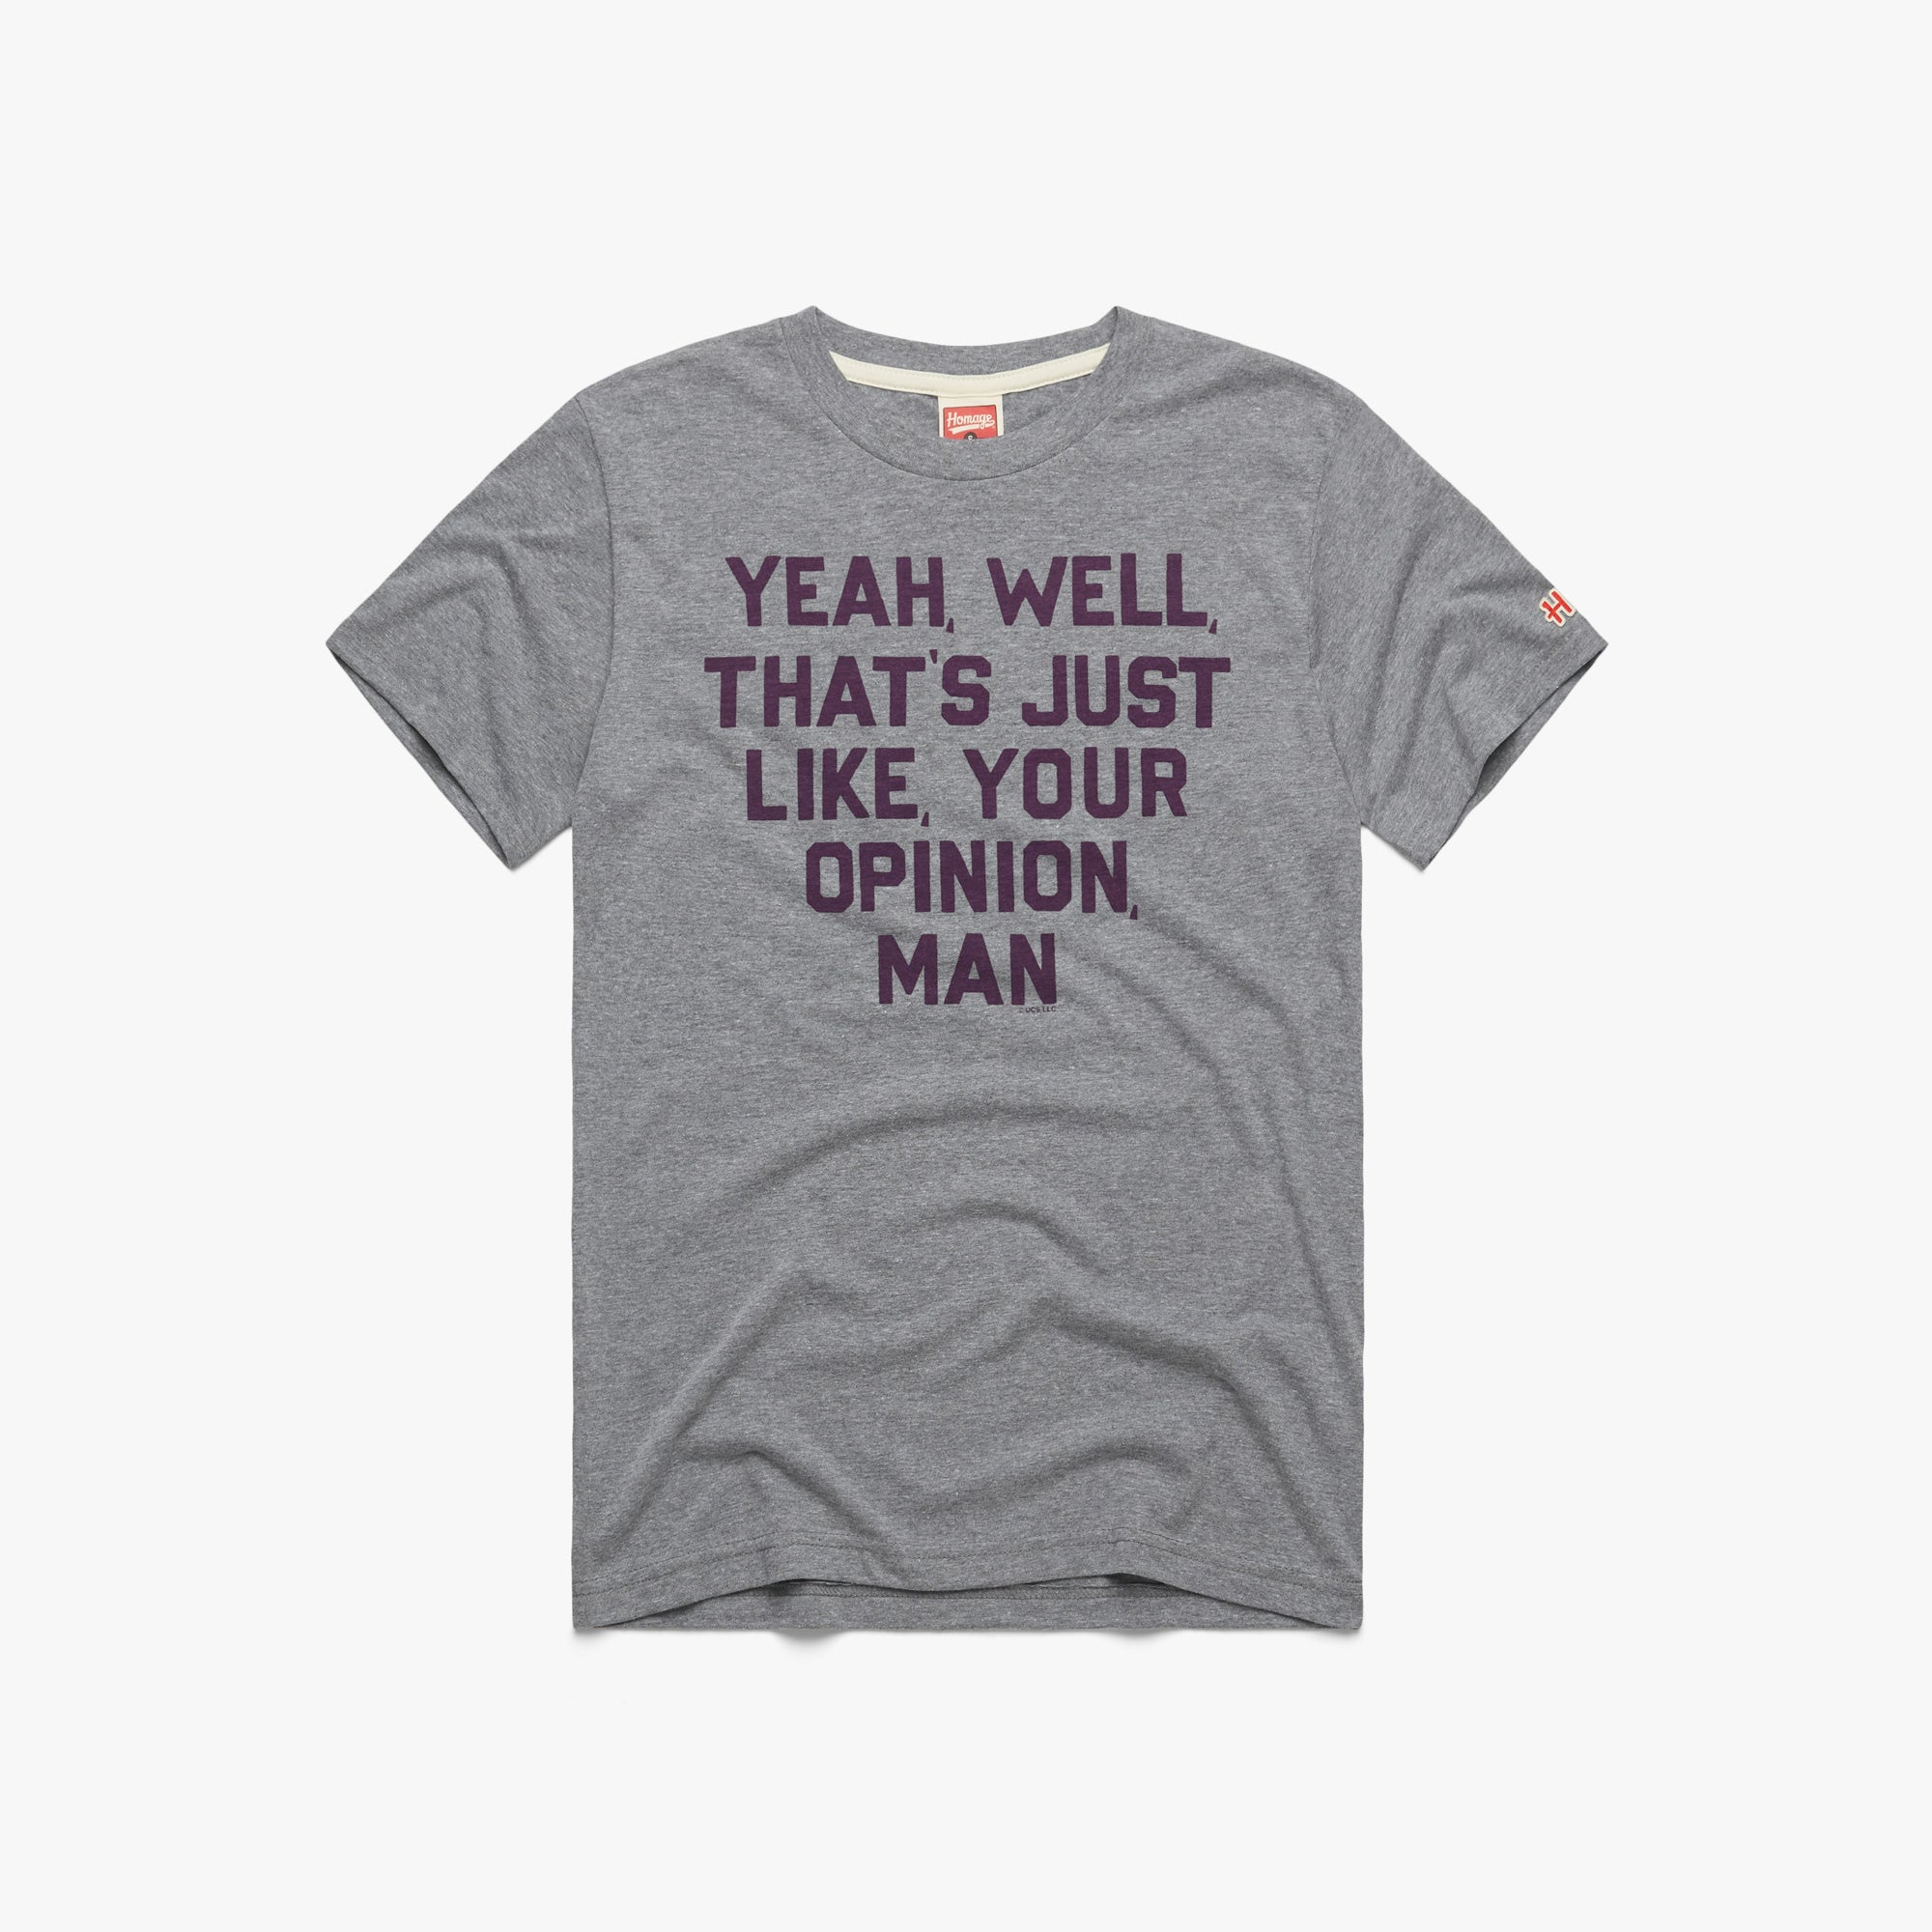 The Big Lebowski You Know That/'s Just Like Your Opinon Black T-shirt S-3XL